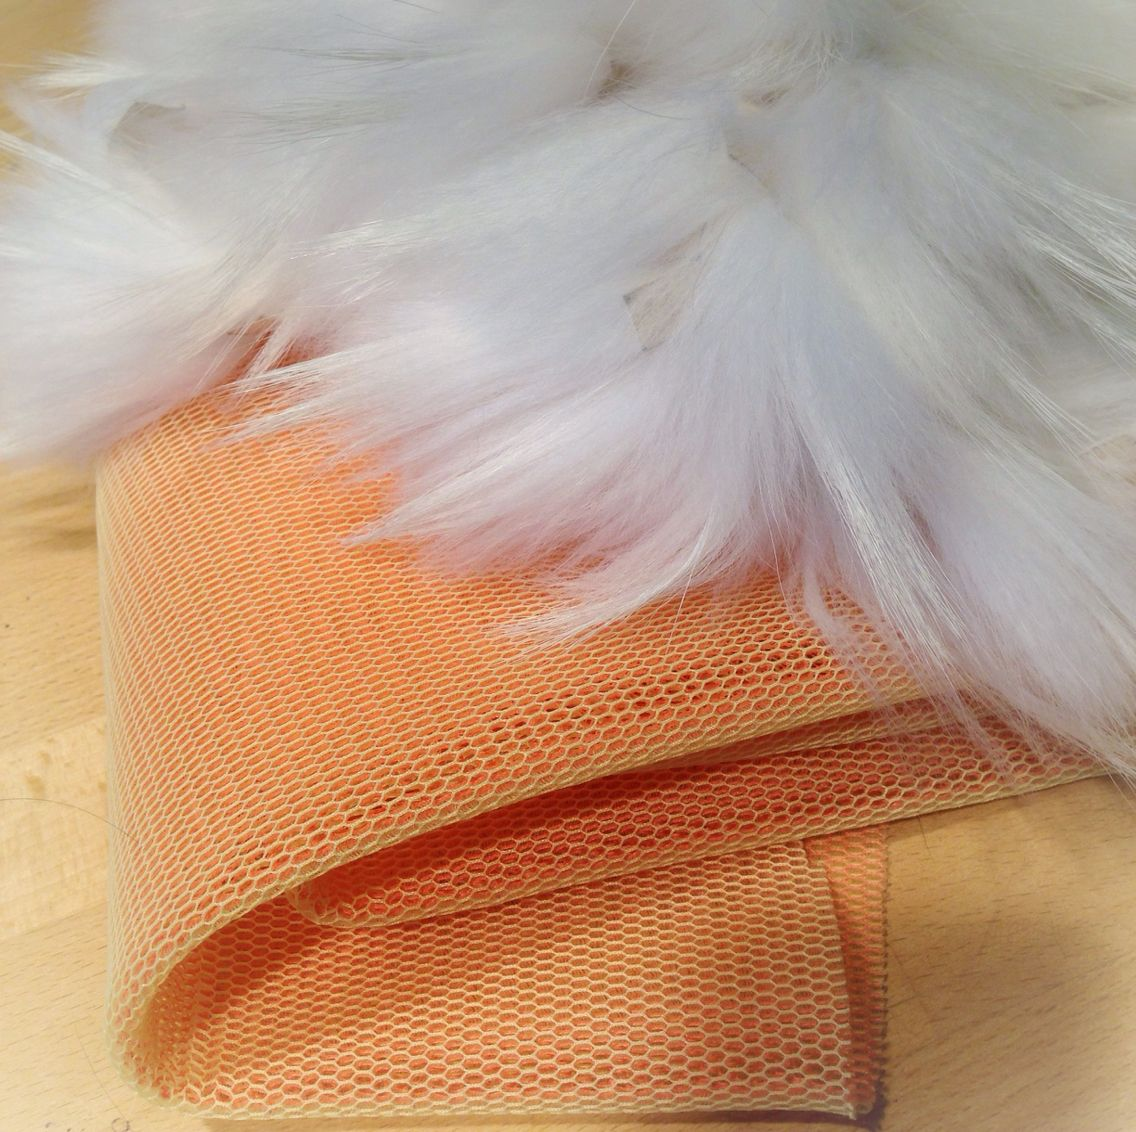 We love the contrast between the soft fur and technical textiles.